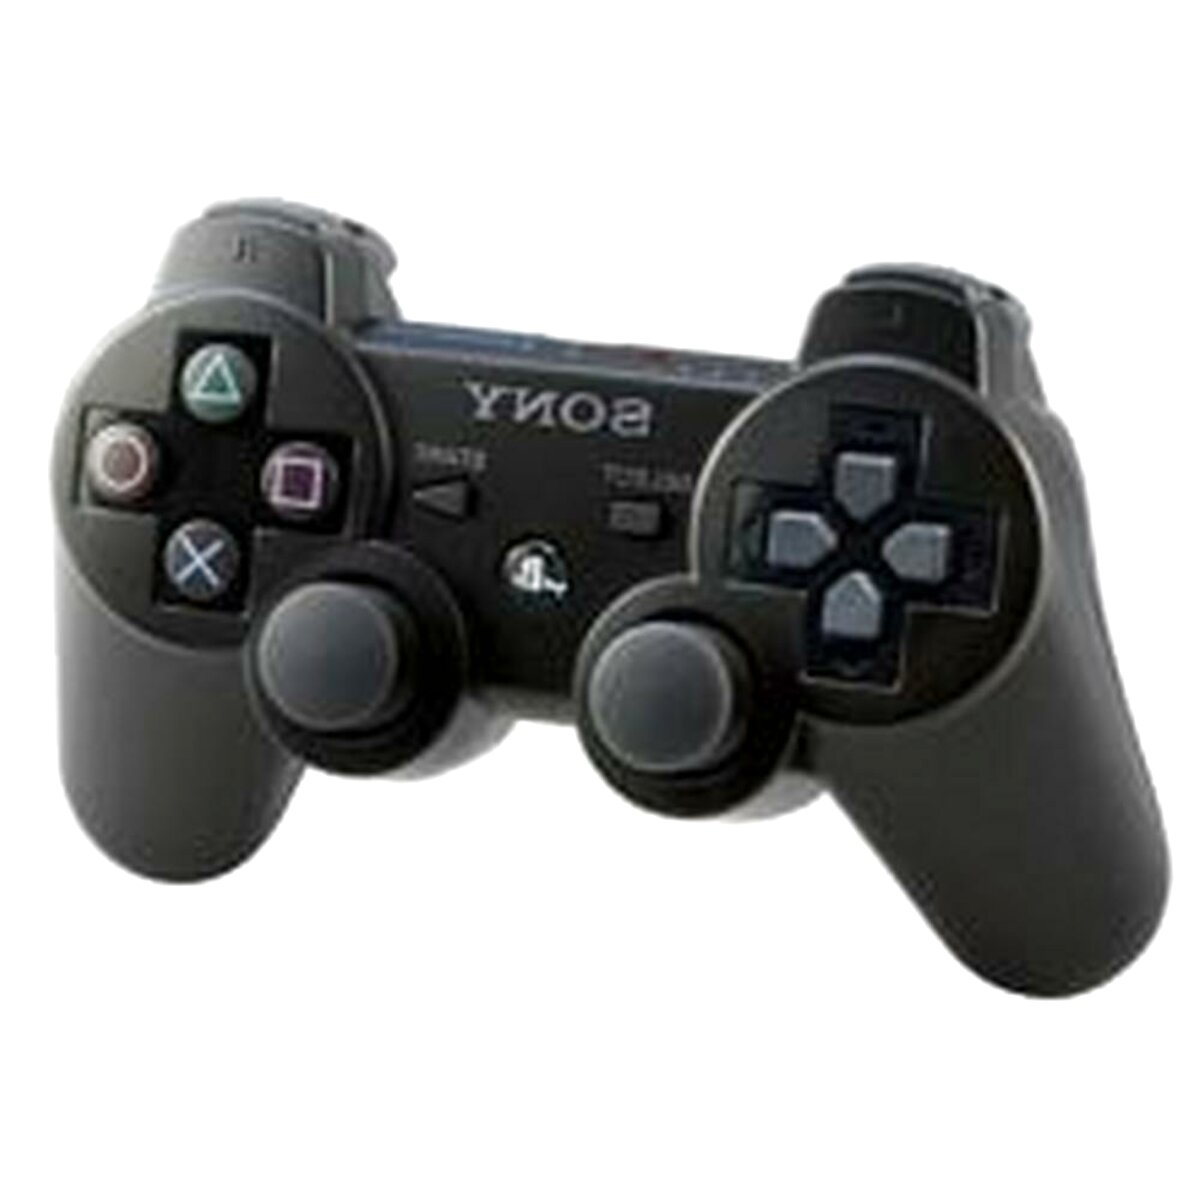 playstation 3 controller for sale